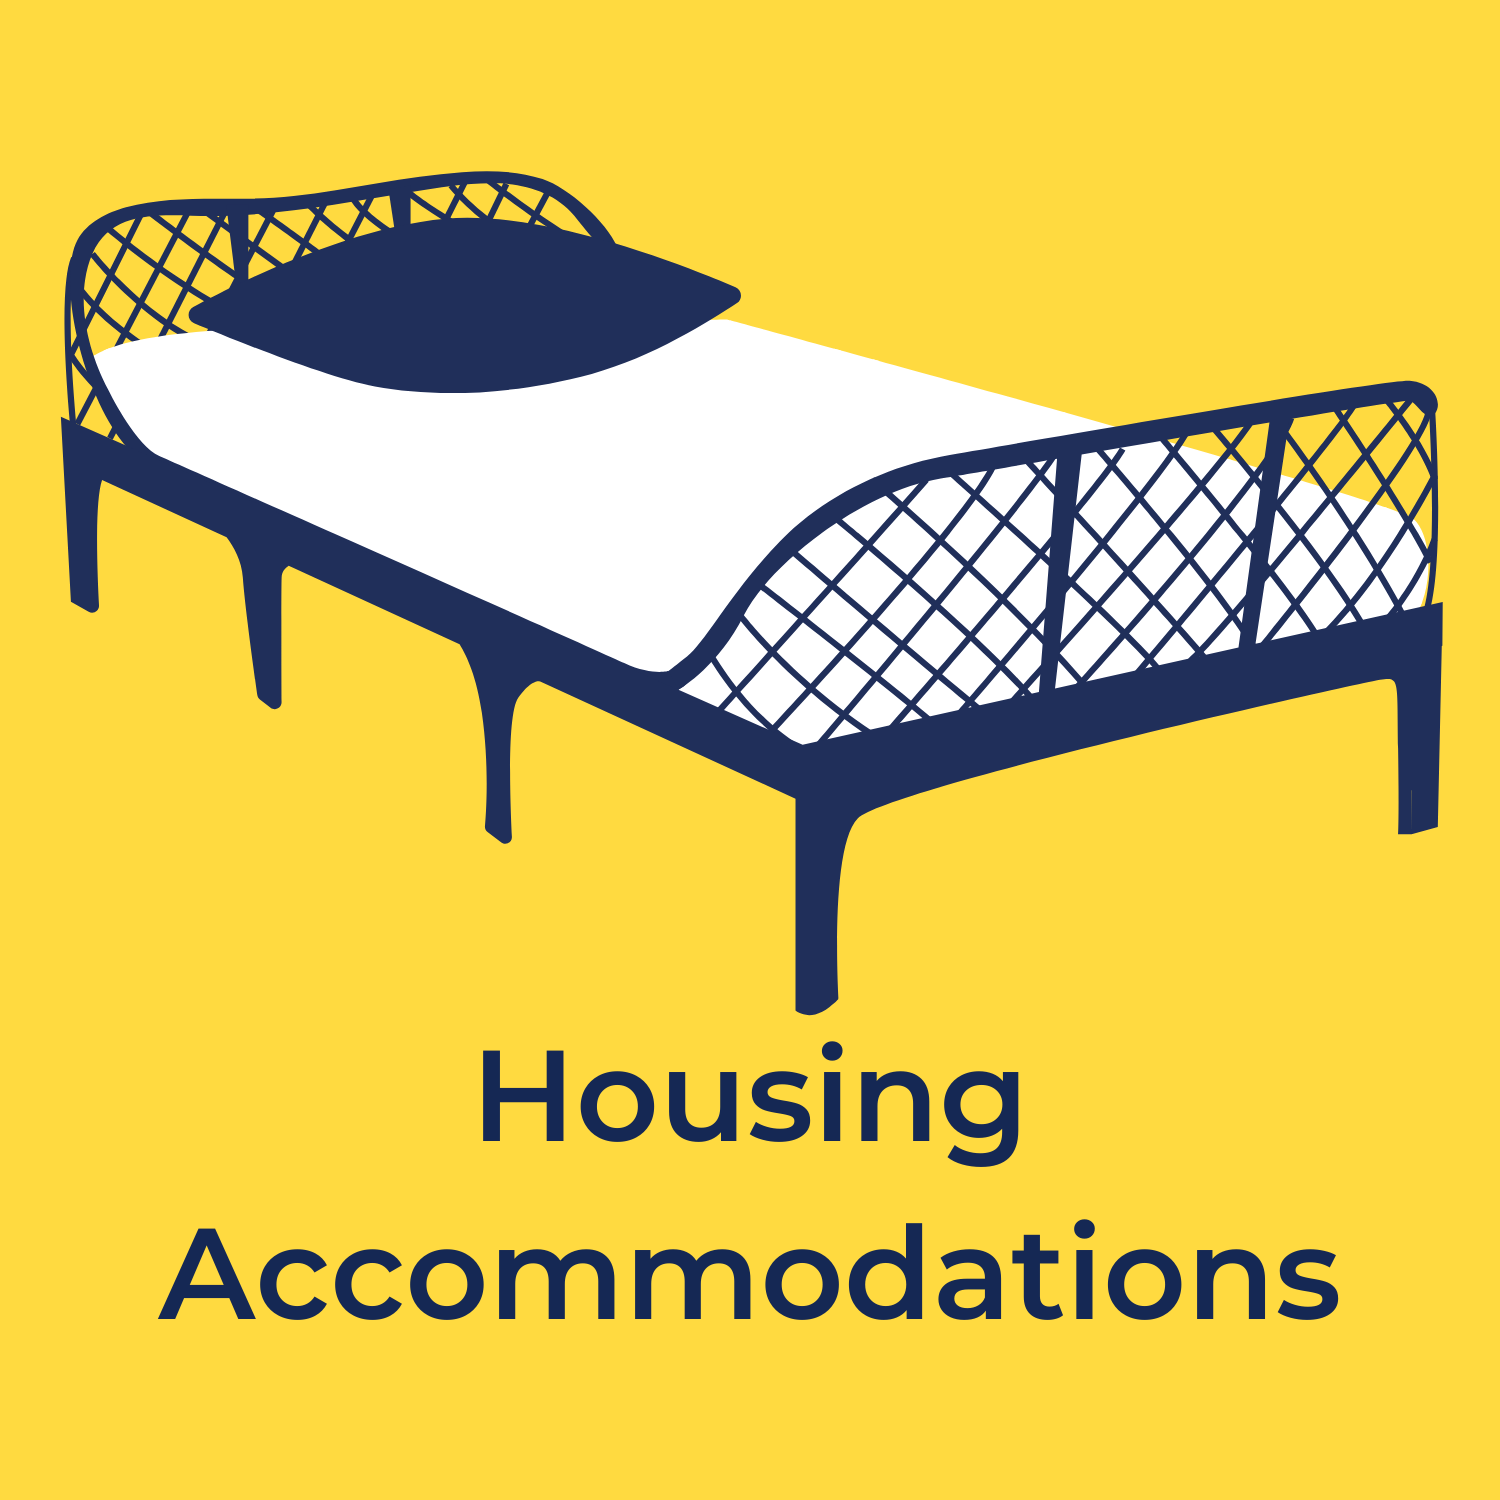 """yellow background, in the center there is a drawing of a white and blue bed, beneath in navy blue reads """"housing accommodations"""""""